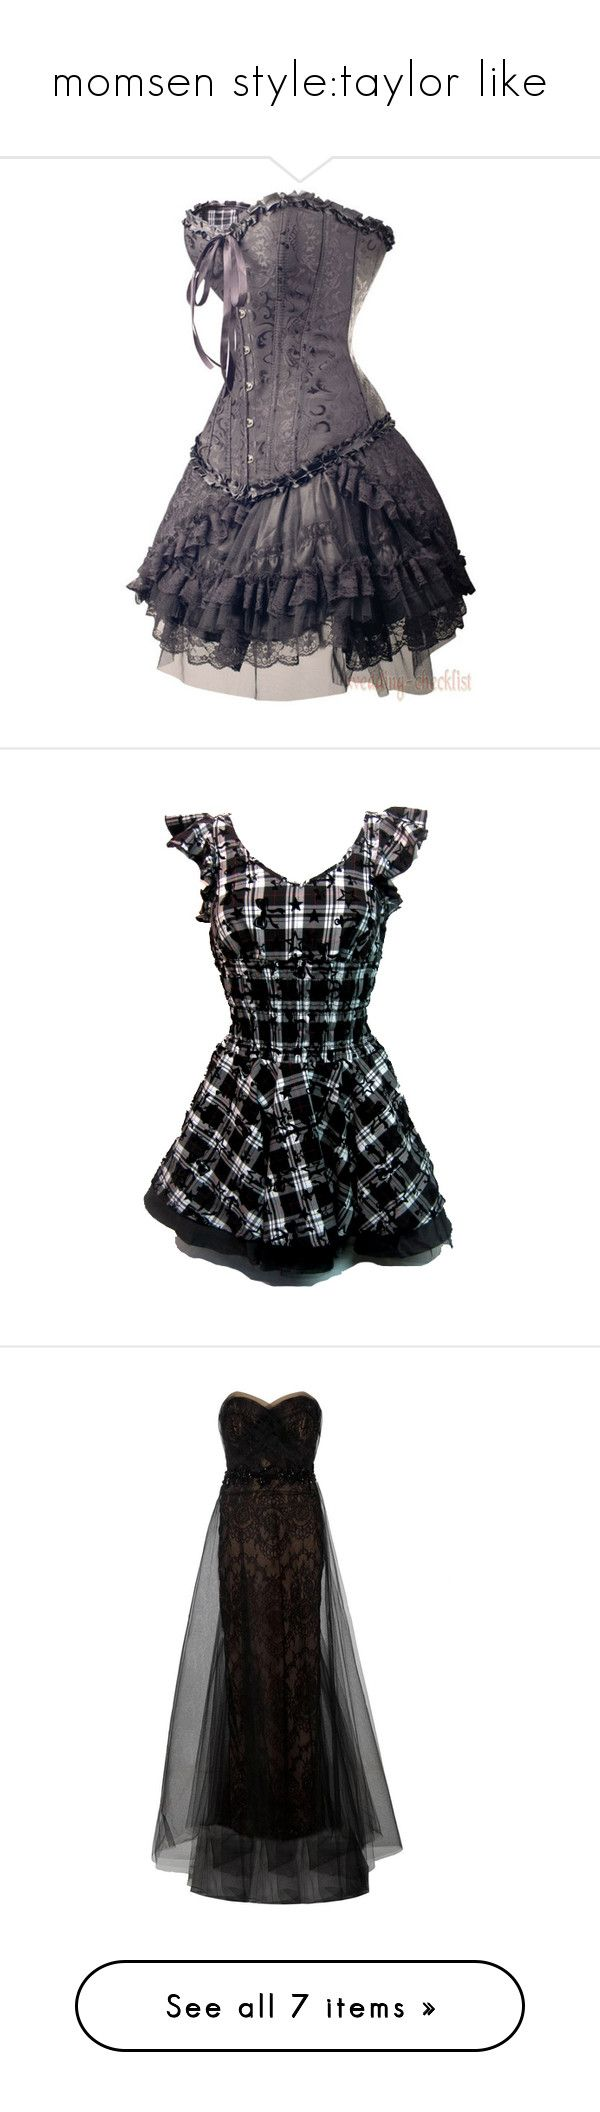 """""""momsen style:taylor like"""" by souzaviick ❤ liked on Polyvore featuring dresses, vestidos, corsets, short dresses, tops, gothic punk dresses, short gothic dresses, white plaid dress, short white dresses and white goth dress"""